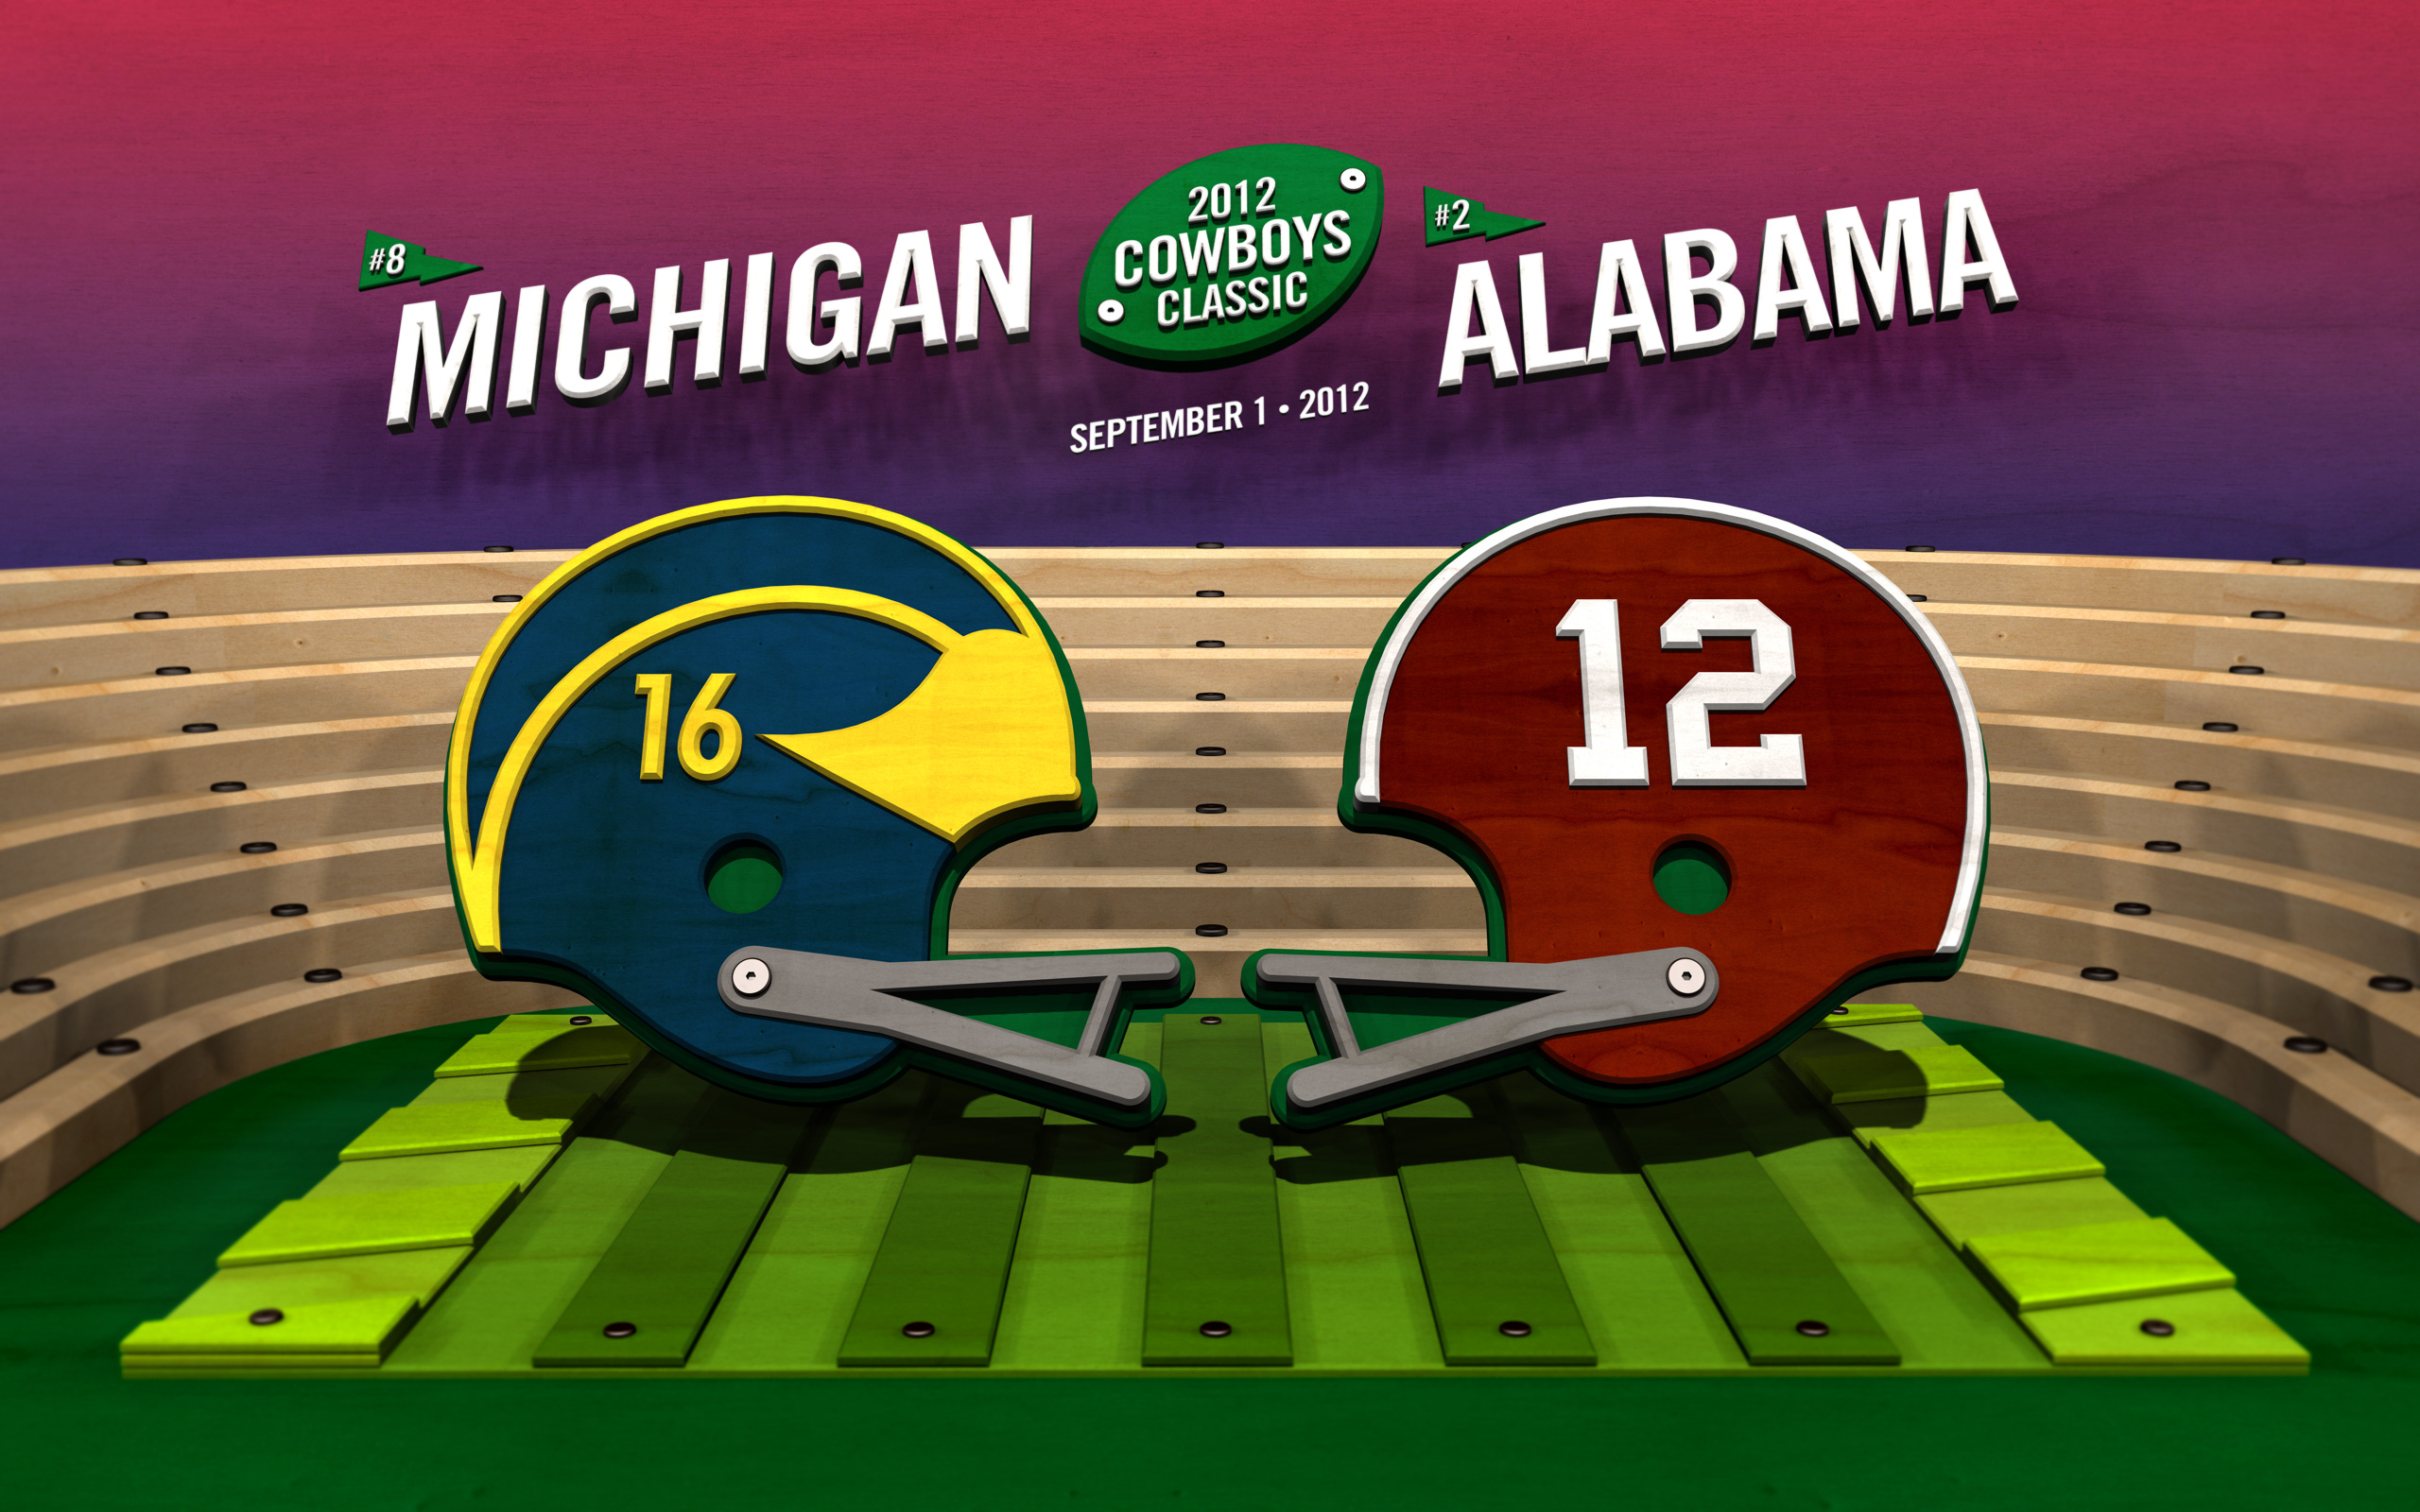 Michigan Football Wallpaper HD Alabama Widescreen